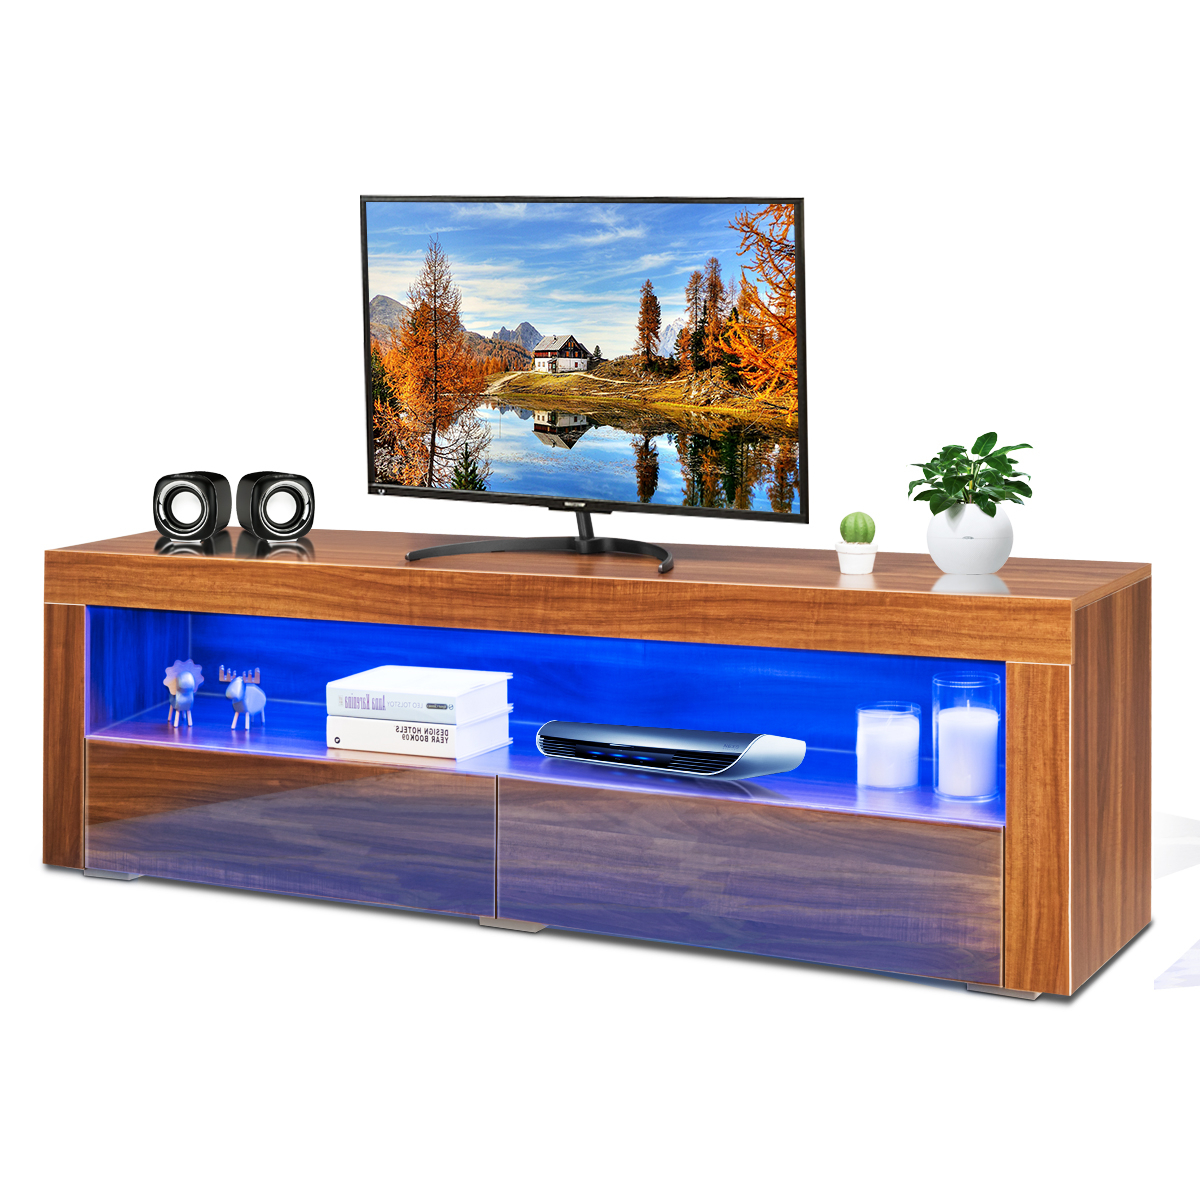 Costway High Gloss Tv Stand Media Entertainment W/led Inside Most Current Tv Stands Cabinet Media Console Shelves 2 Drawers With Led Light (View 9 of 10)